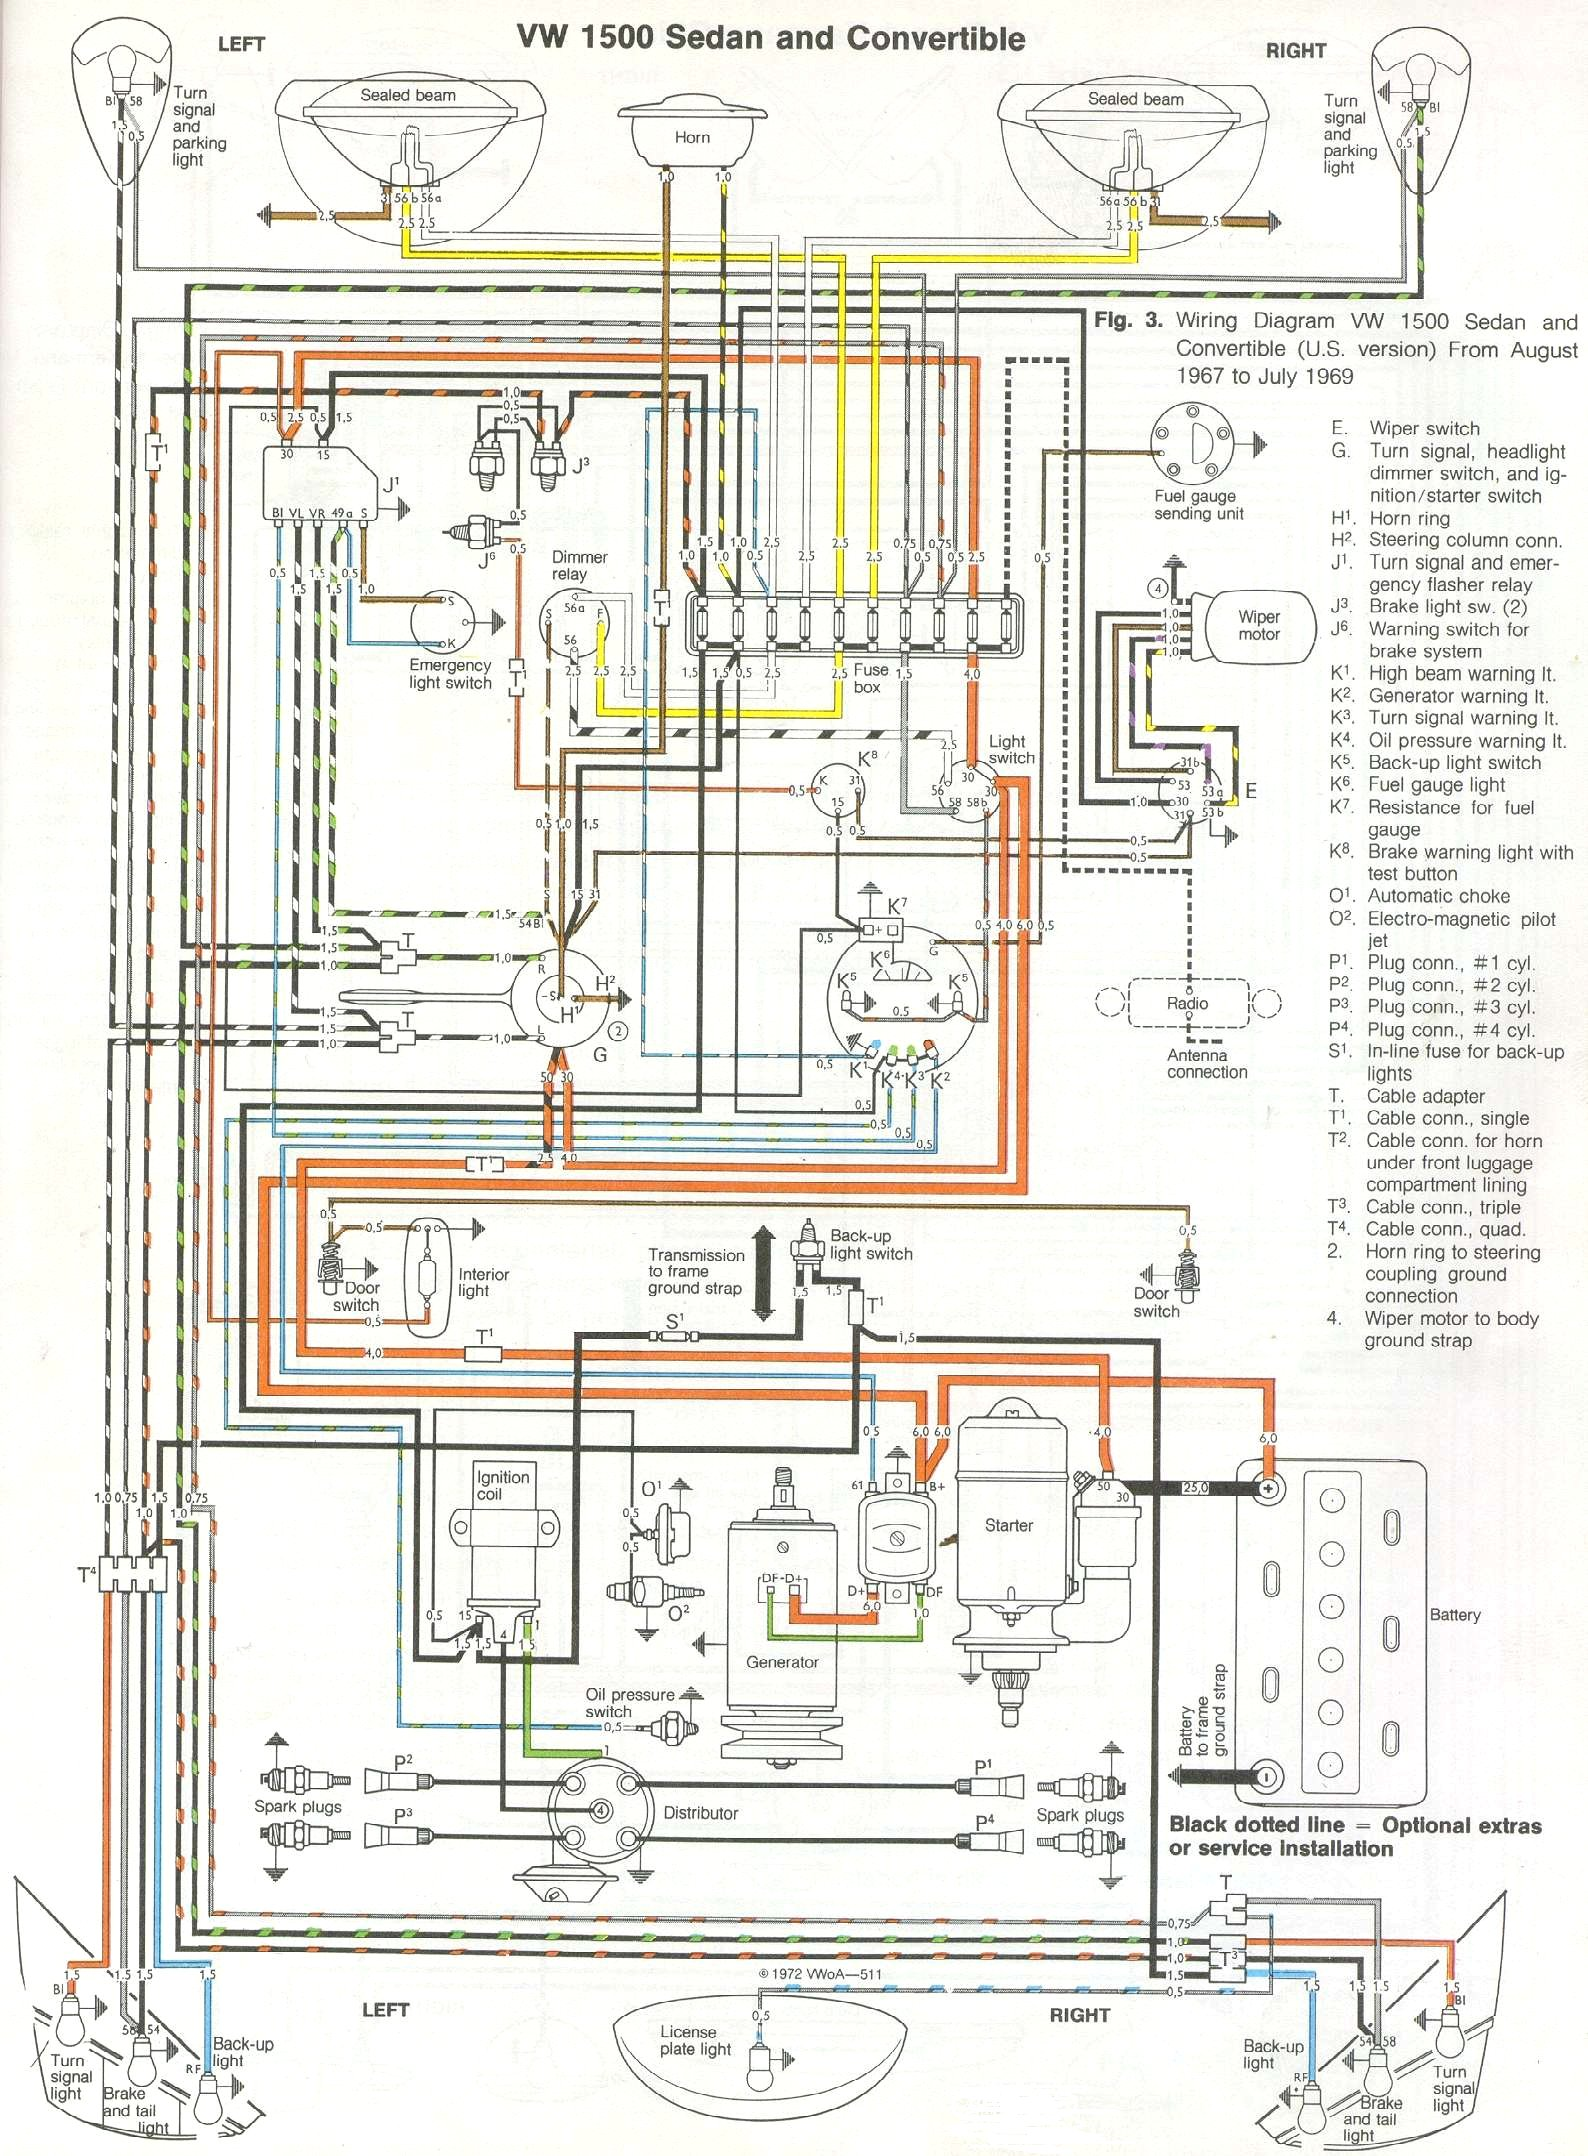 Ford Maverick Wiring | Wiring Diagram Automotive on 02 ford ranger exploded view, tail light wiring diagram, 2002 ford ranger body diagram, 2002 ford ranger fuse diagram, 02 ford ranger wheels, ford explorer power window diagram, 2002 ford ranger vacuum diagram, ford ranger edge fuse diagram, 02 ford ranger parts, 2002 chevy cavalier wiring diagram, 02 ford ranger water pump, 2011 ford ranger radio diagram, 2001 ford ranger fuse diagram, ford focus radio wiring diagram,